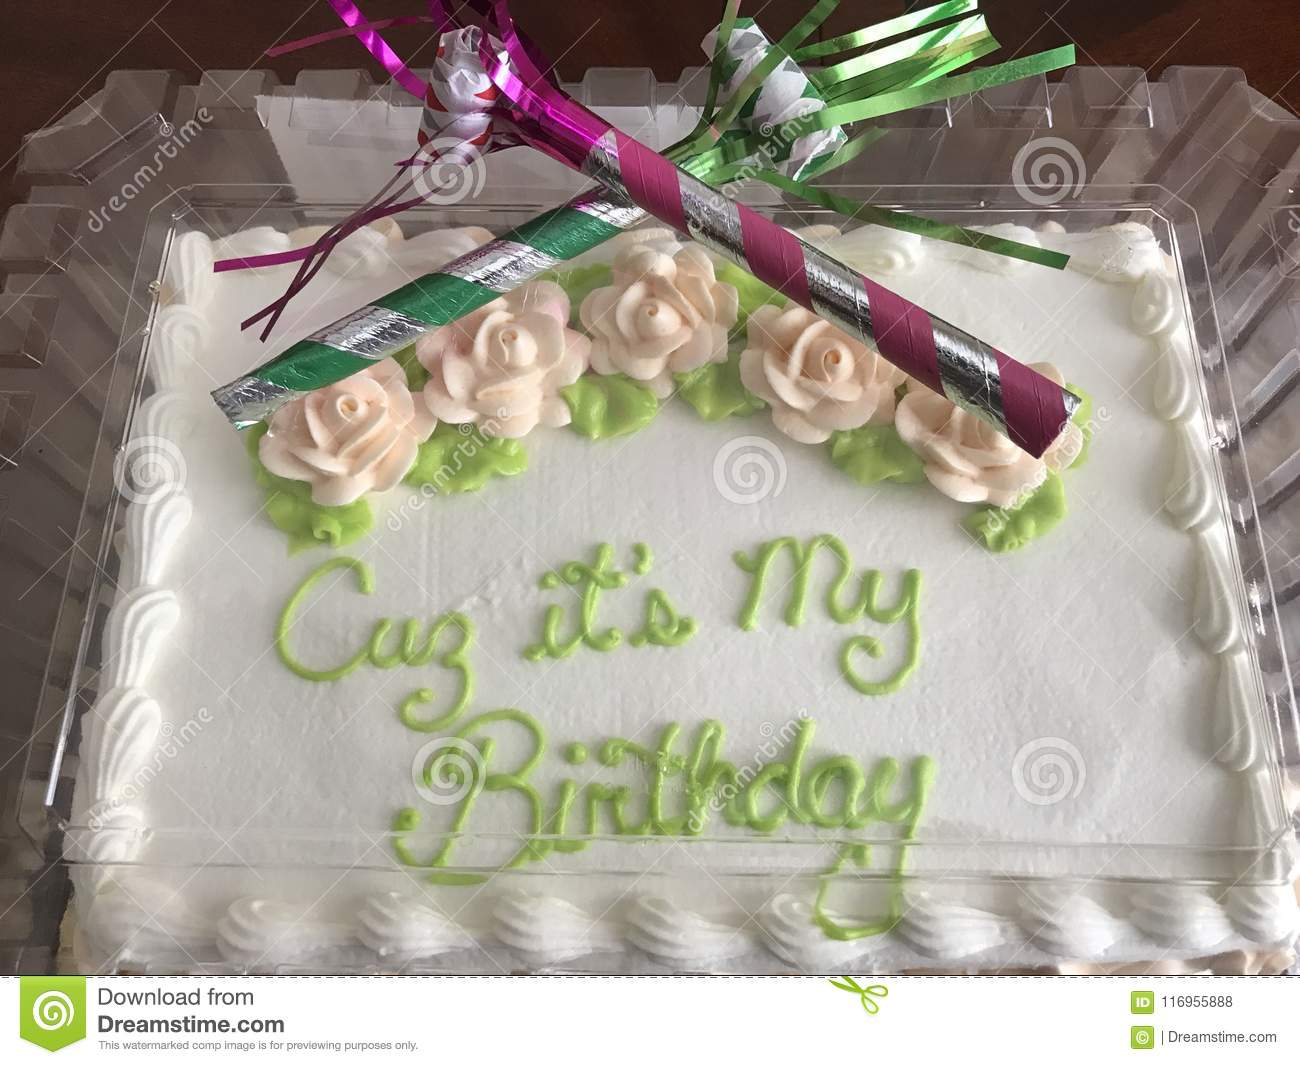 Magnificent Cuz Its My Birthday Cake Stock Photo Image Of Grown 116955888 Funny Birthday Cards Online Alyptdamsfinfo